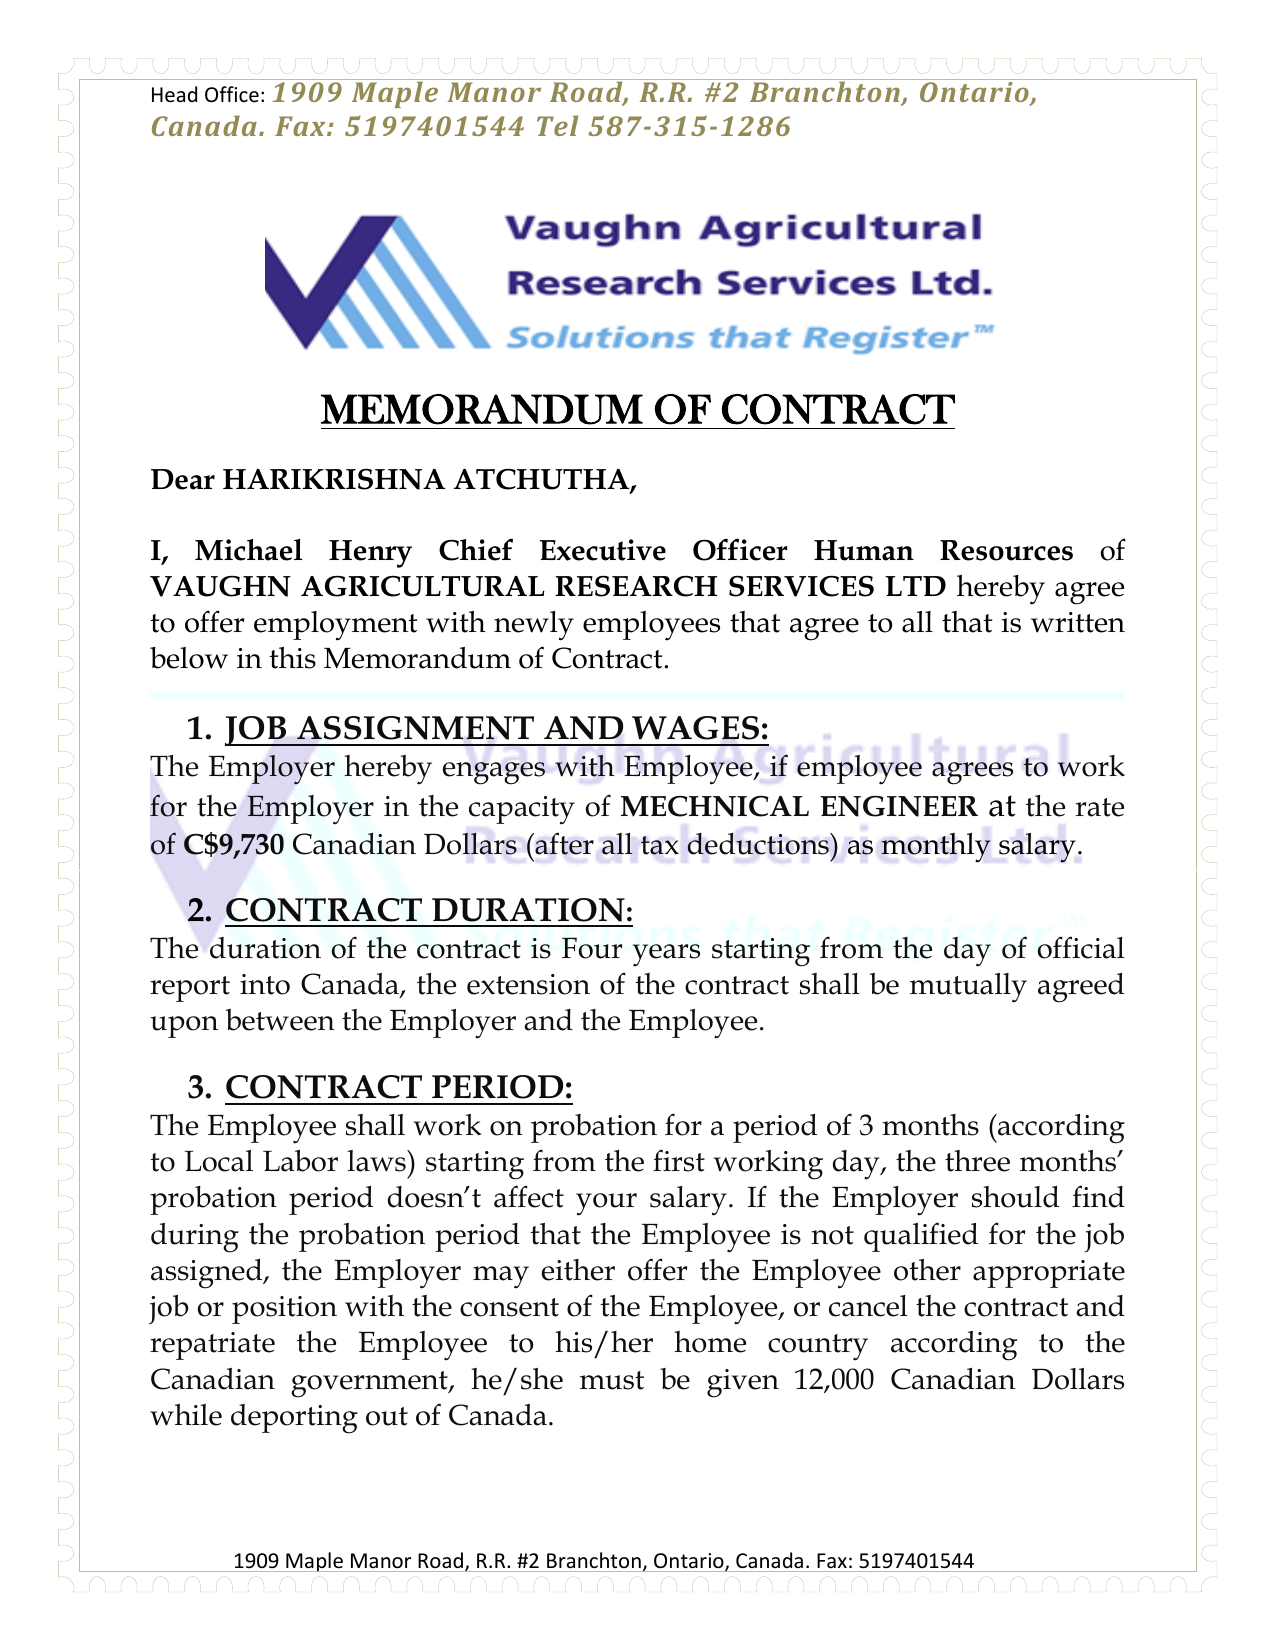 CONTRACT AGREEMENT LETTER FROM VAUGHN AGRICULTURAL RESEARCH